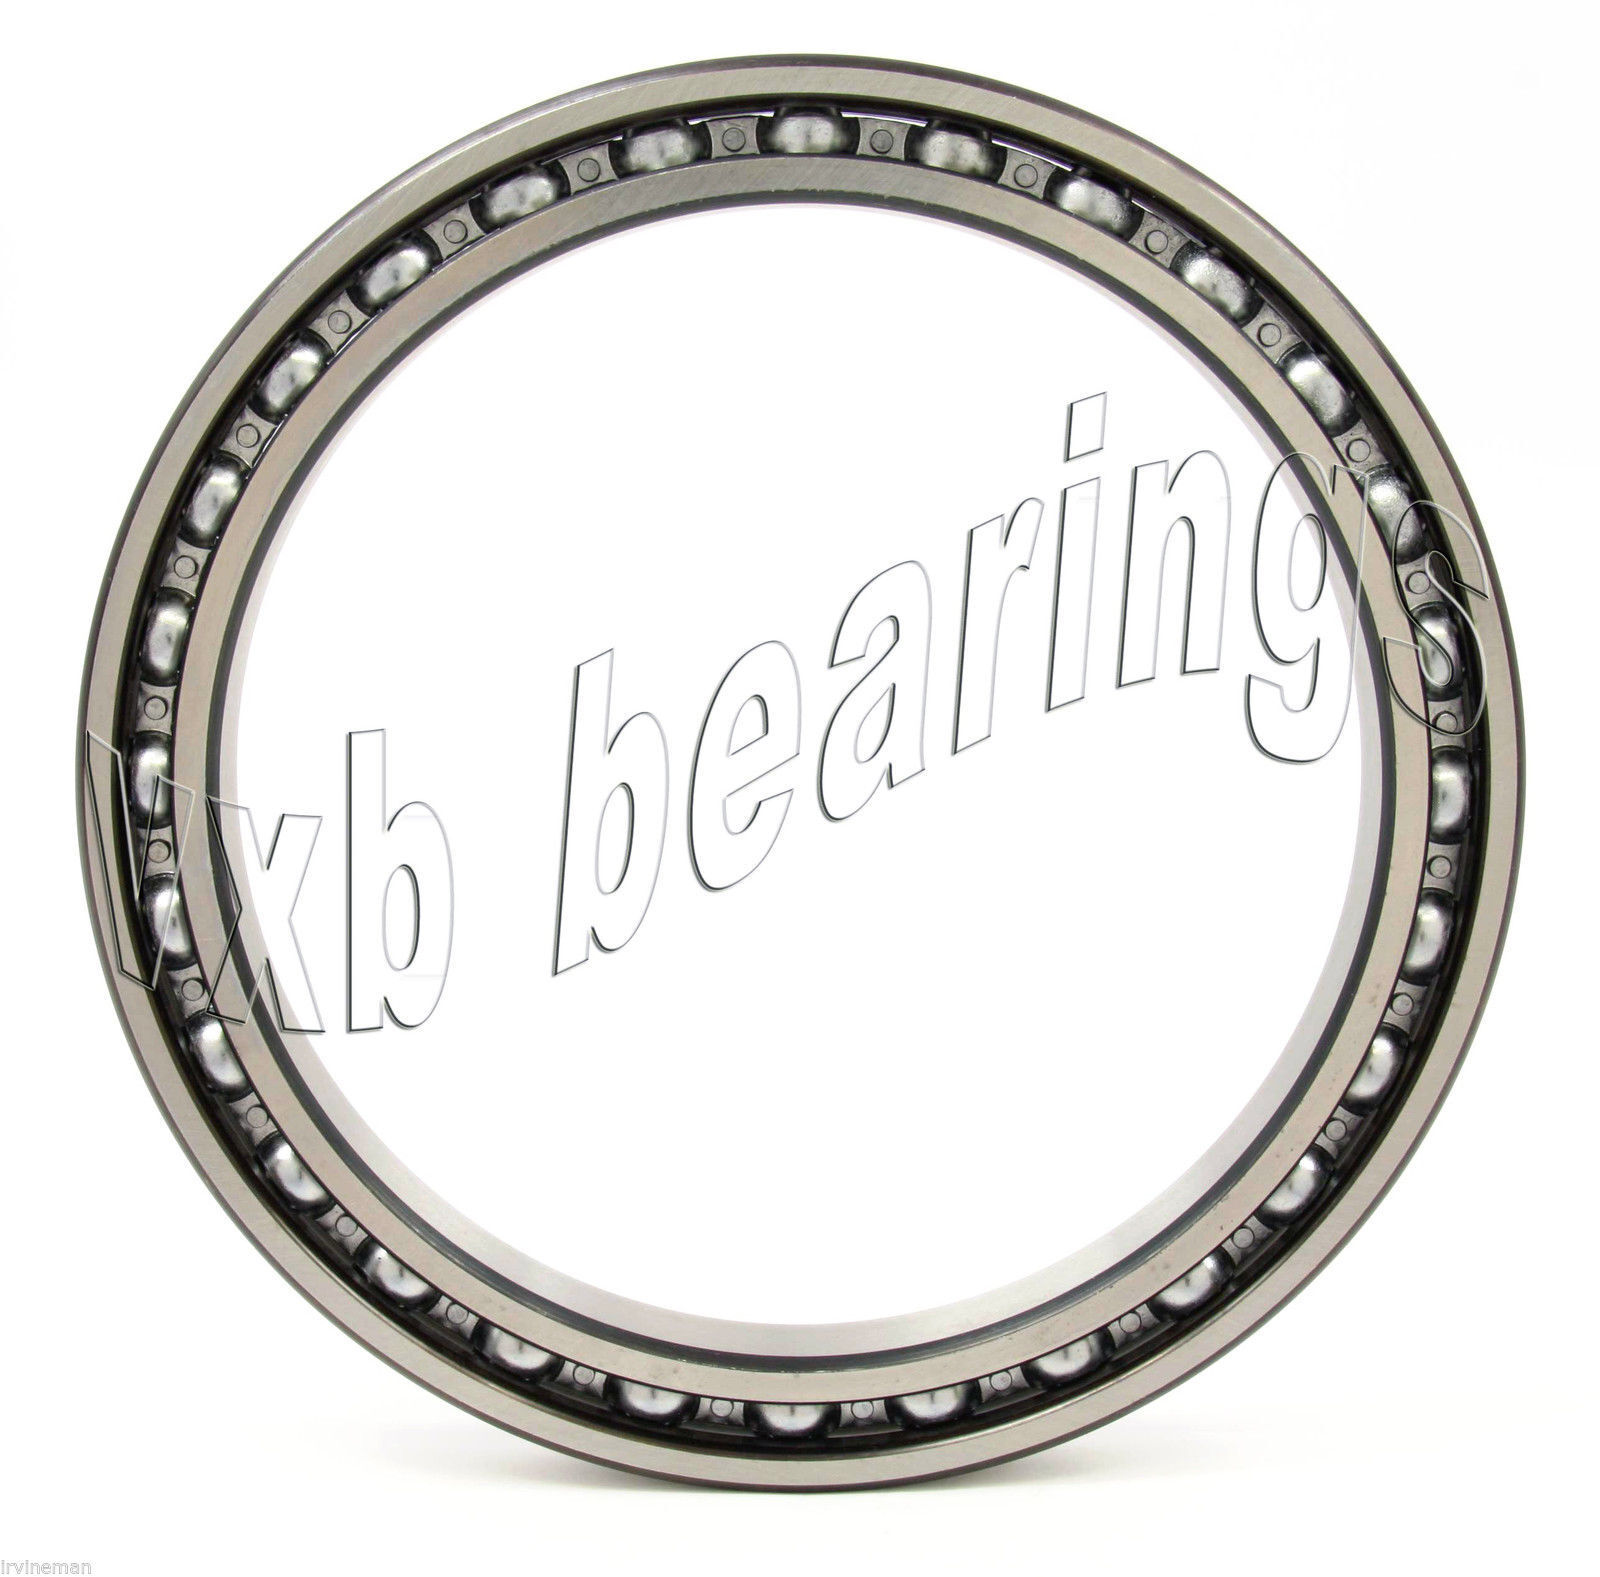 MR6700 Slim//Thin Section Open Ball Bearing Bore Dia.10mm OD 15mm Width 3mm NB700